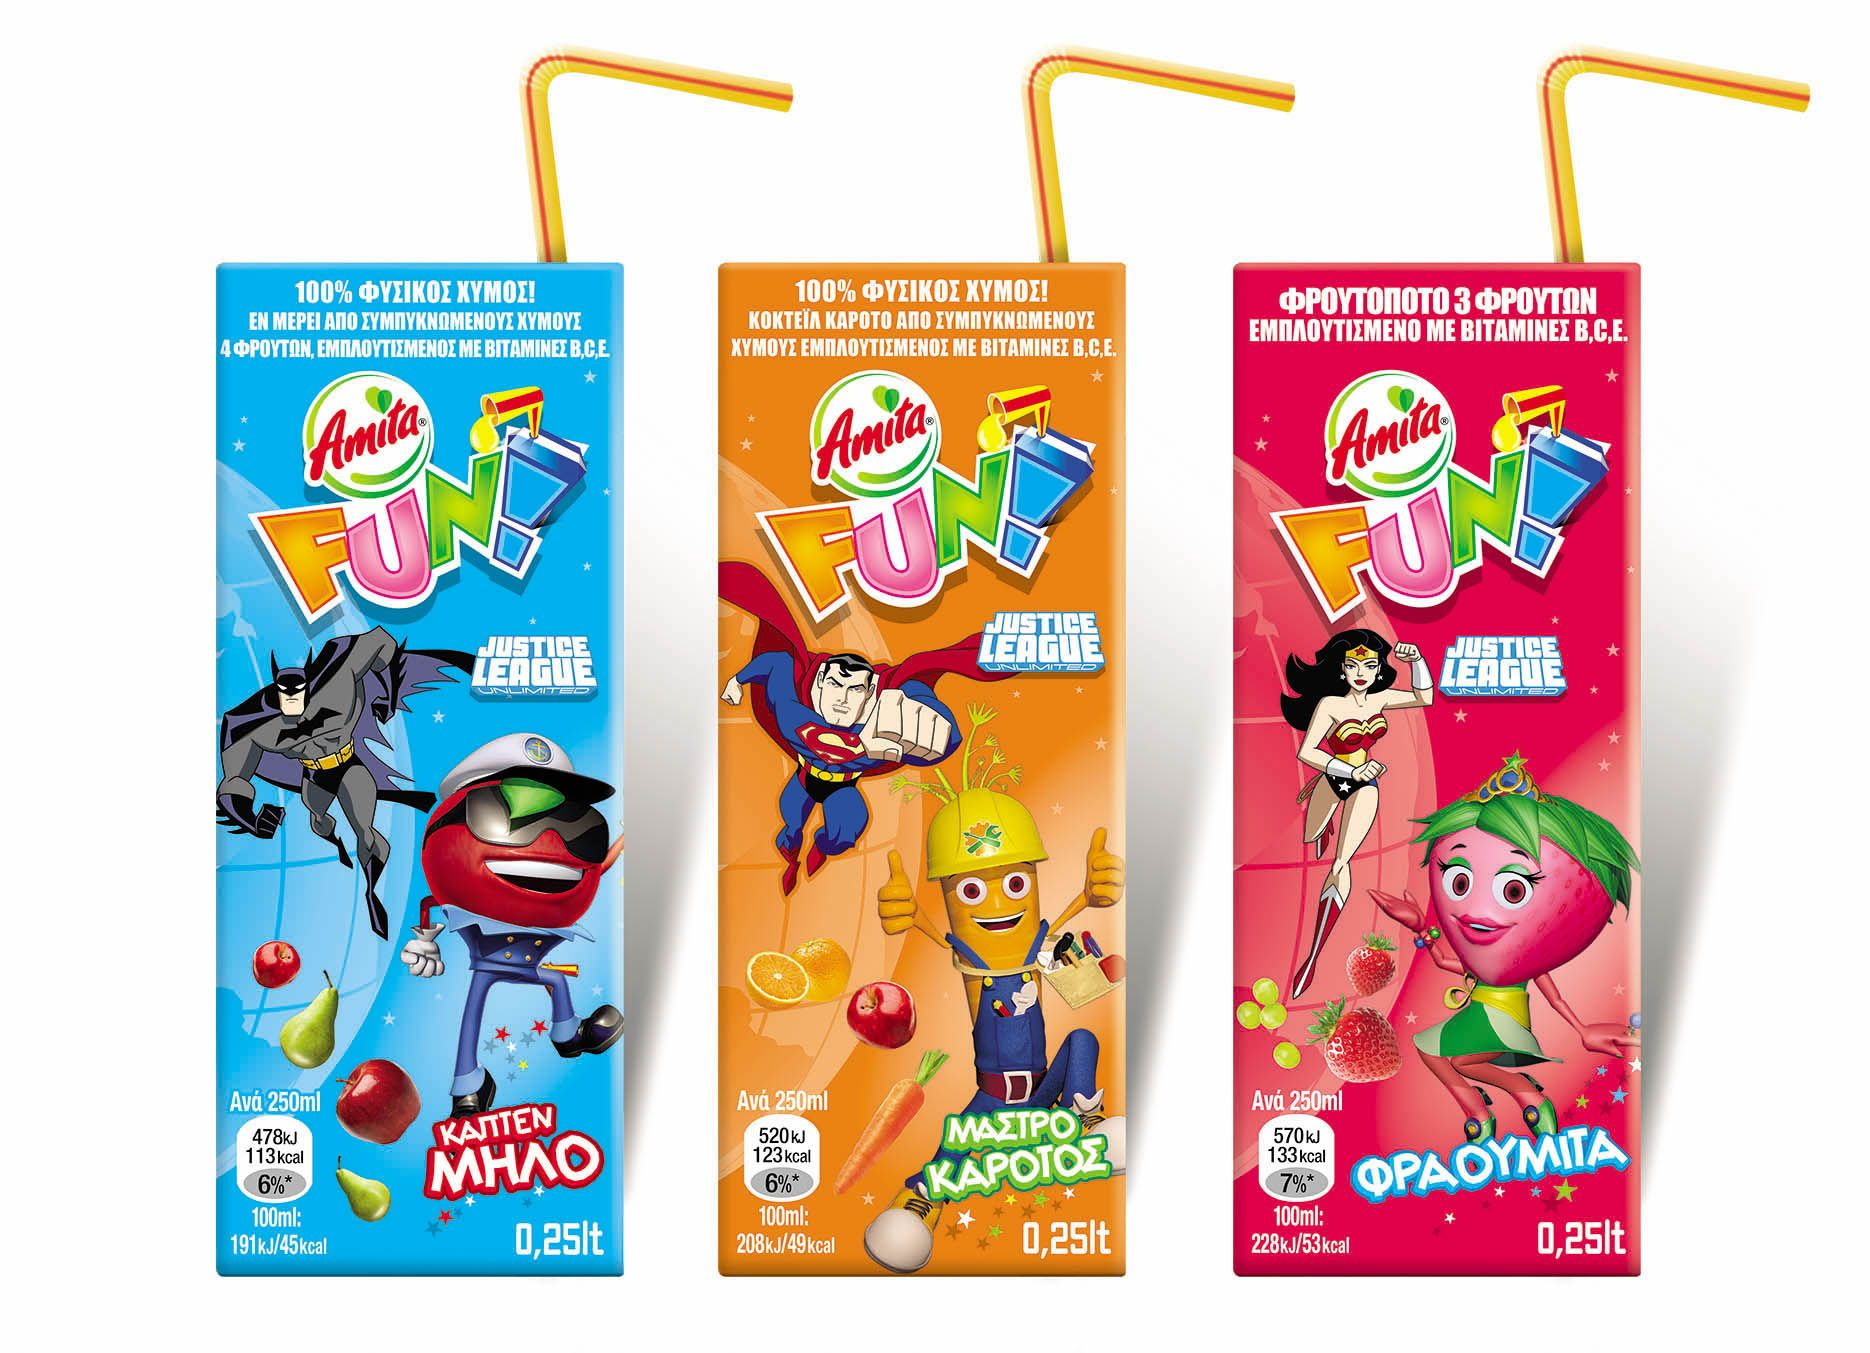 Justice League food and beverage juices